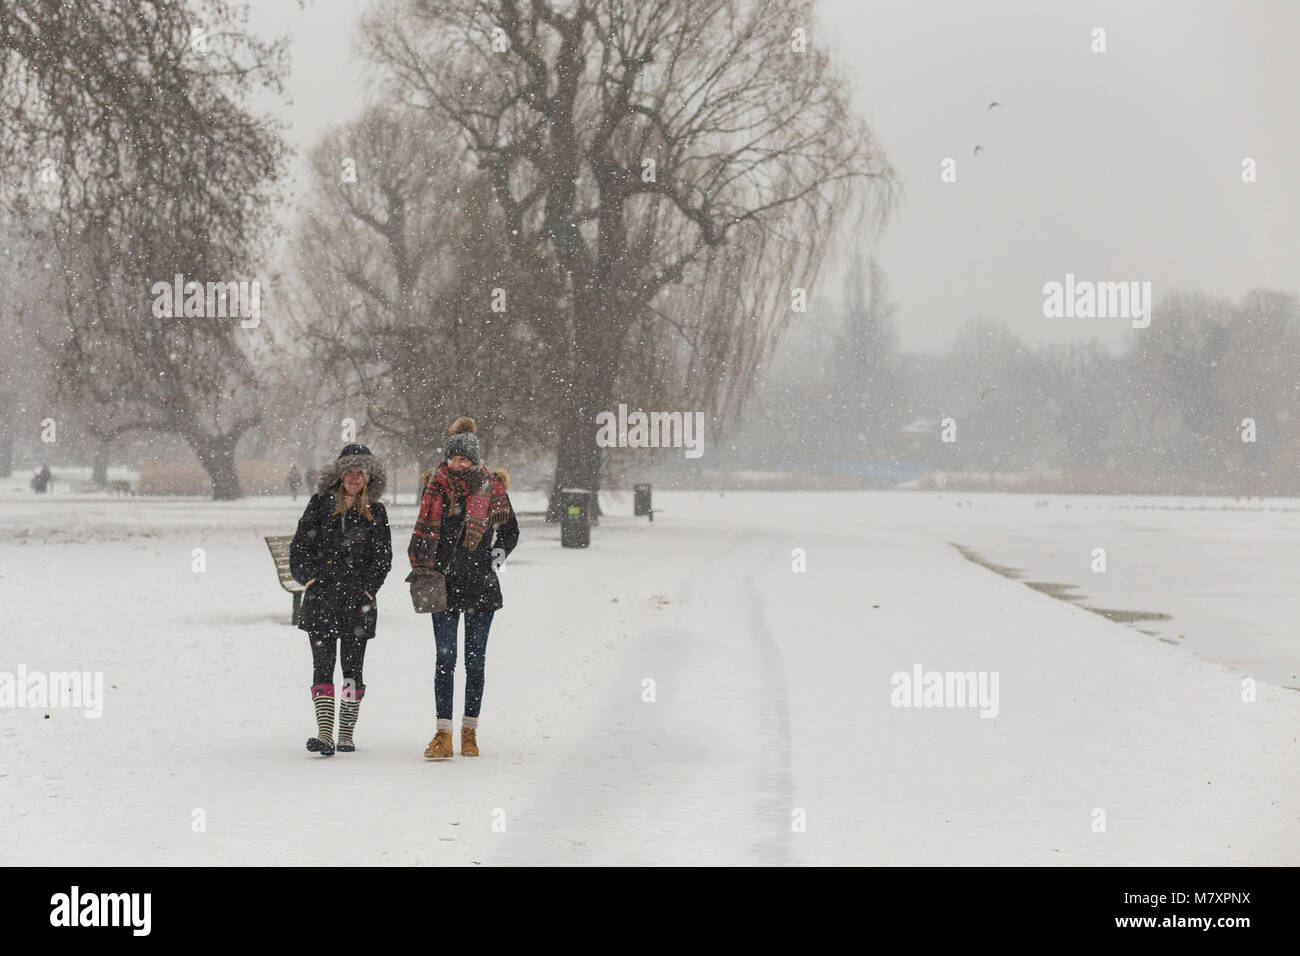 LONDON, UK: Two young women walking in white Regent's Park while it is snowing - Stock Image